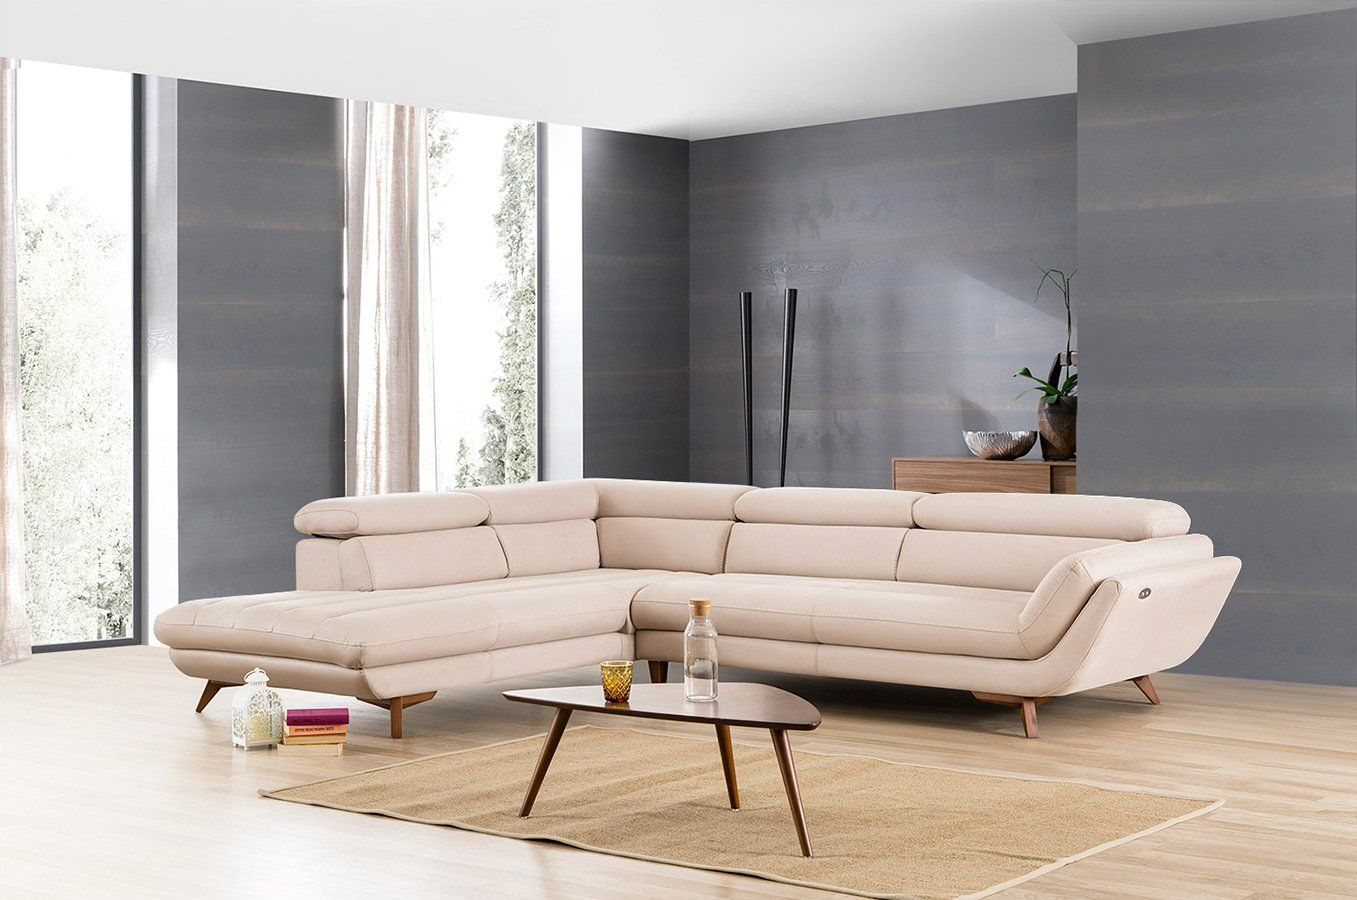 Koltuk Takimlari Kose Koltuk Takimlari Koltuktakimlari Rapsodi Yemekodasitakimlari Yatakodasitakimlari Furniture Home Decor Sectional Couch